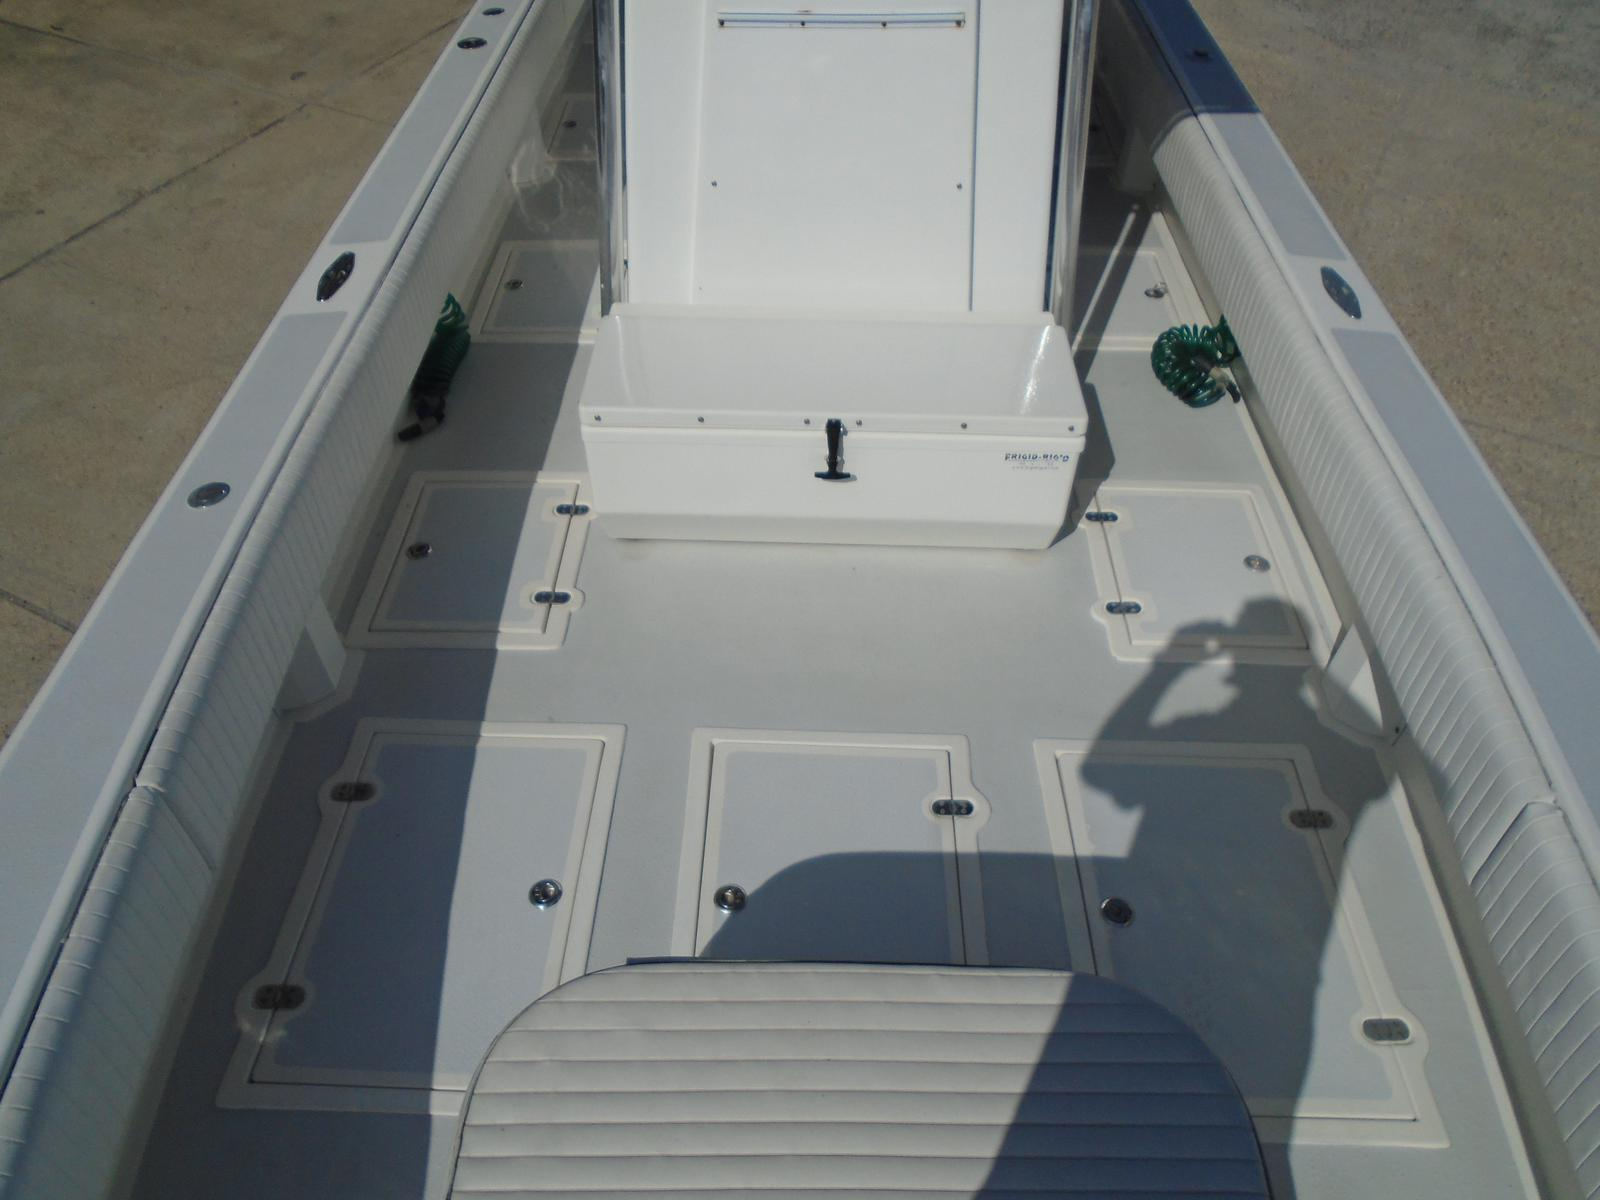 2007 Sabalo boat for sale, model of the boat is 41 Custom CC & Image # 37 of 50